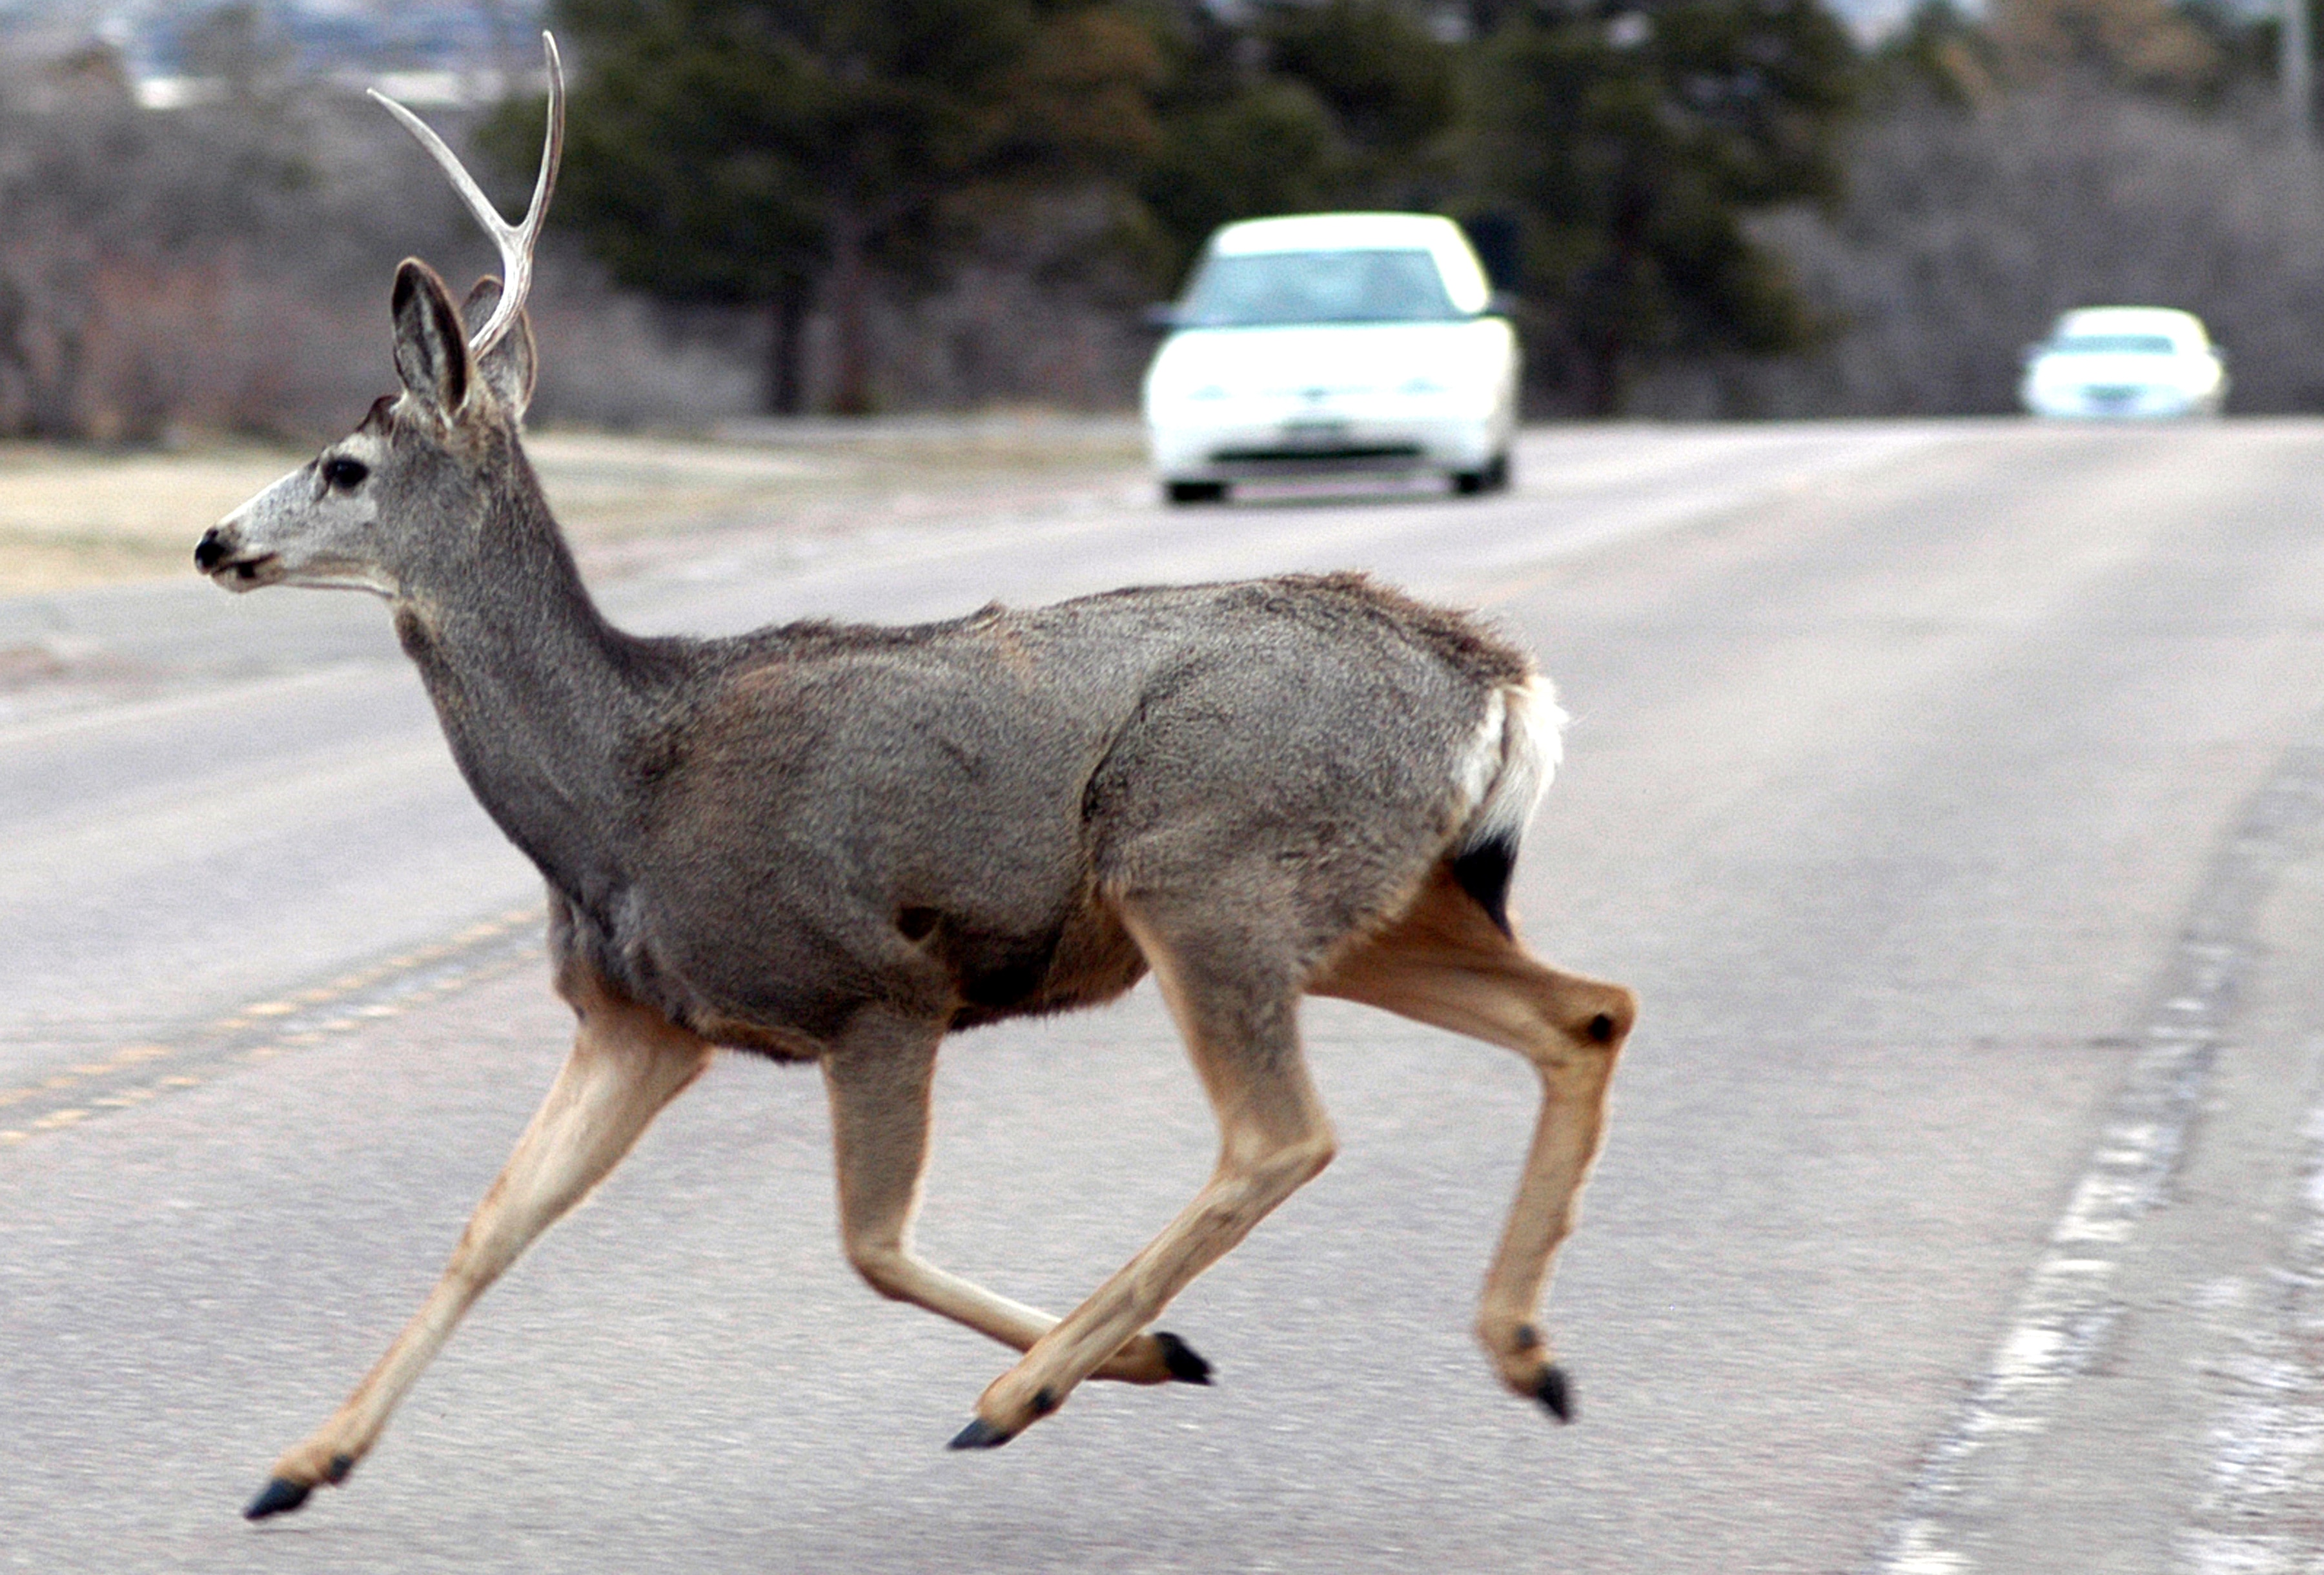 Deer crossing roads can cause major damage. Learn more about deer and car collisions and how to avoid them.